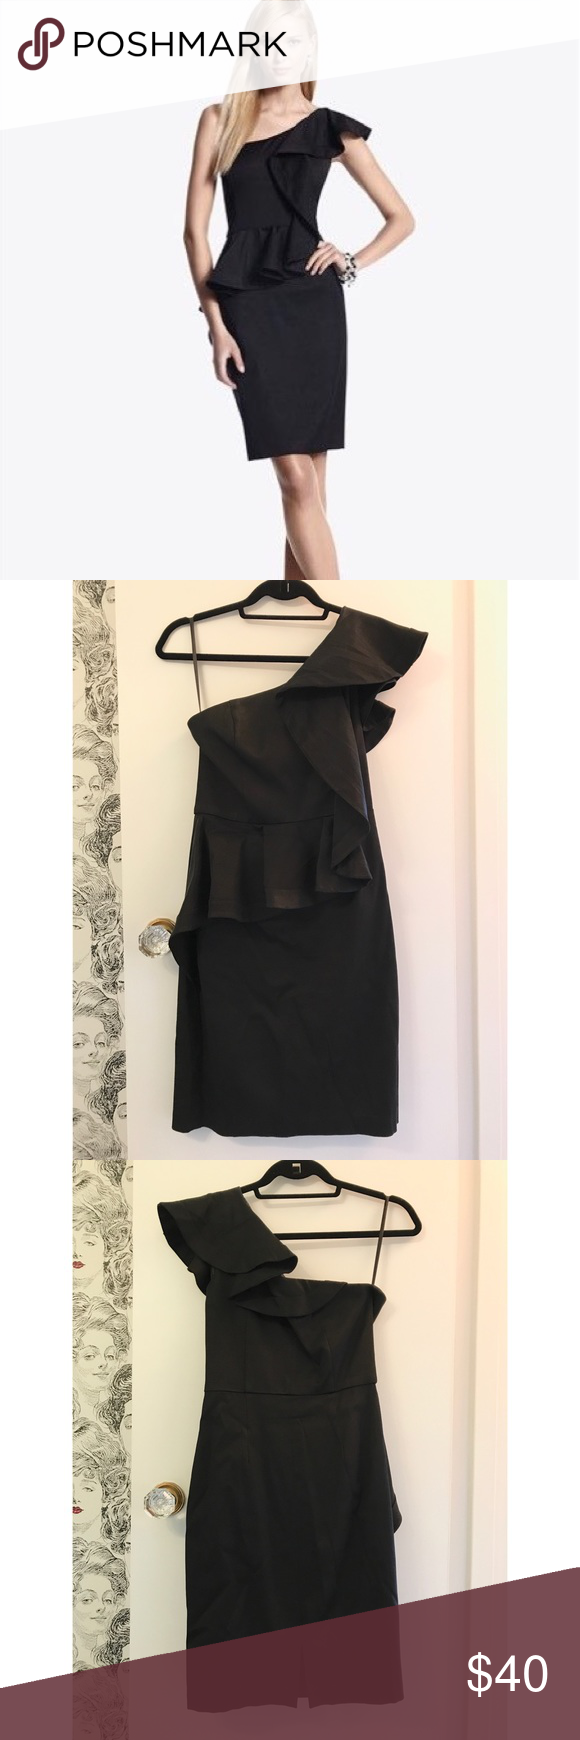 White house black market one shoulder ruffle dress